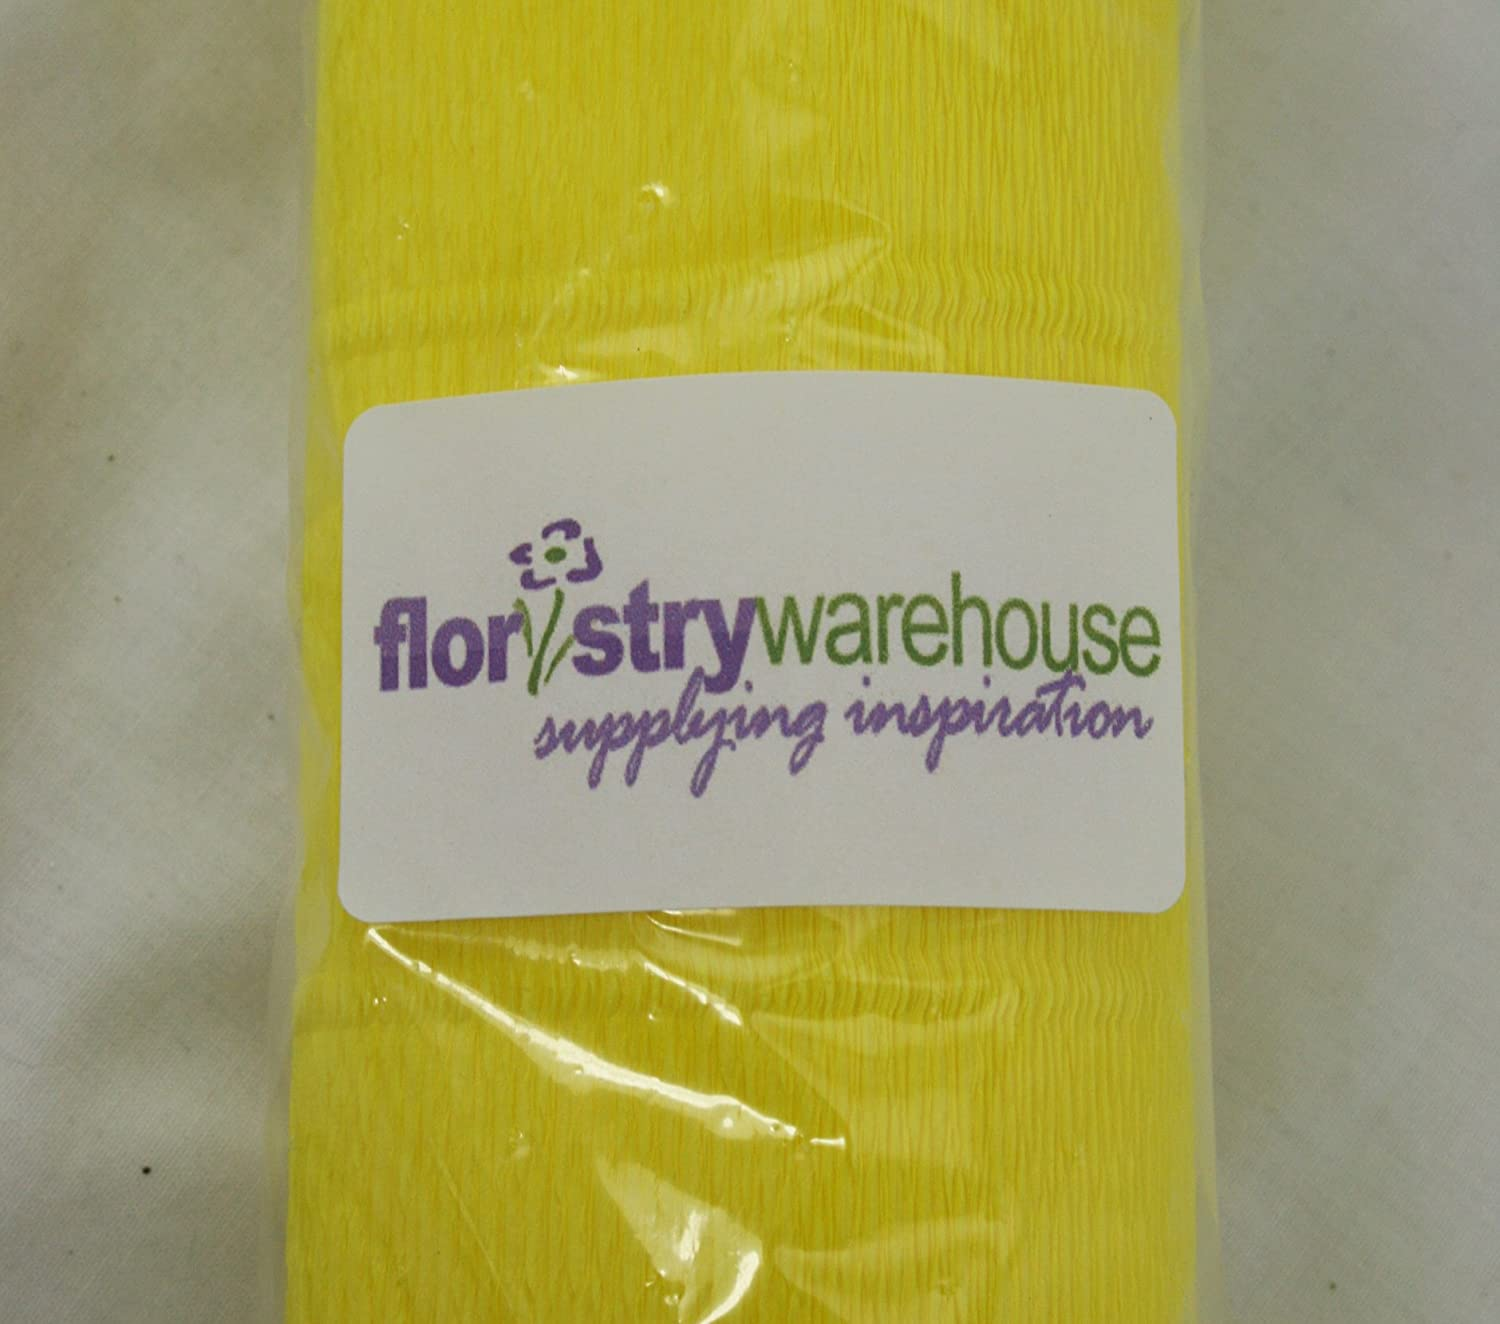 FloristryWarehouse Metallic Platinum 806 Crepe Paper Roll 20 Inches Wide x 8ft Long Top Quality Italian Paper Craft